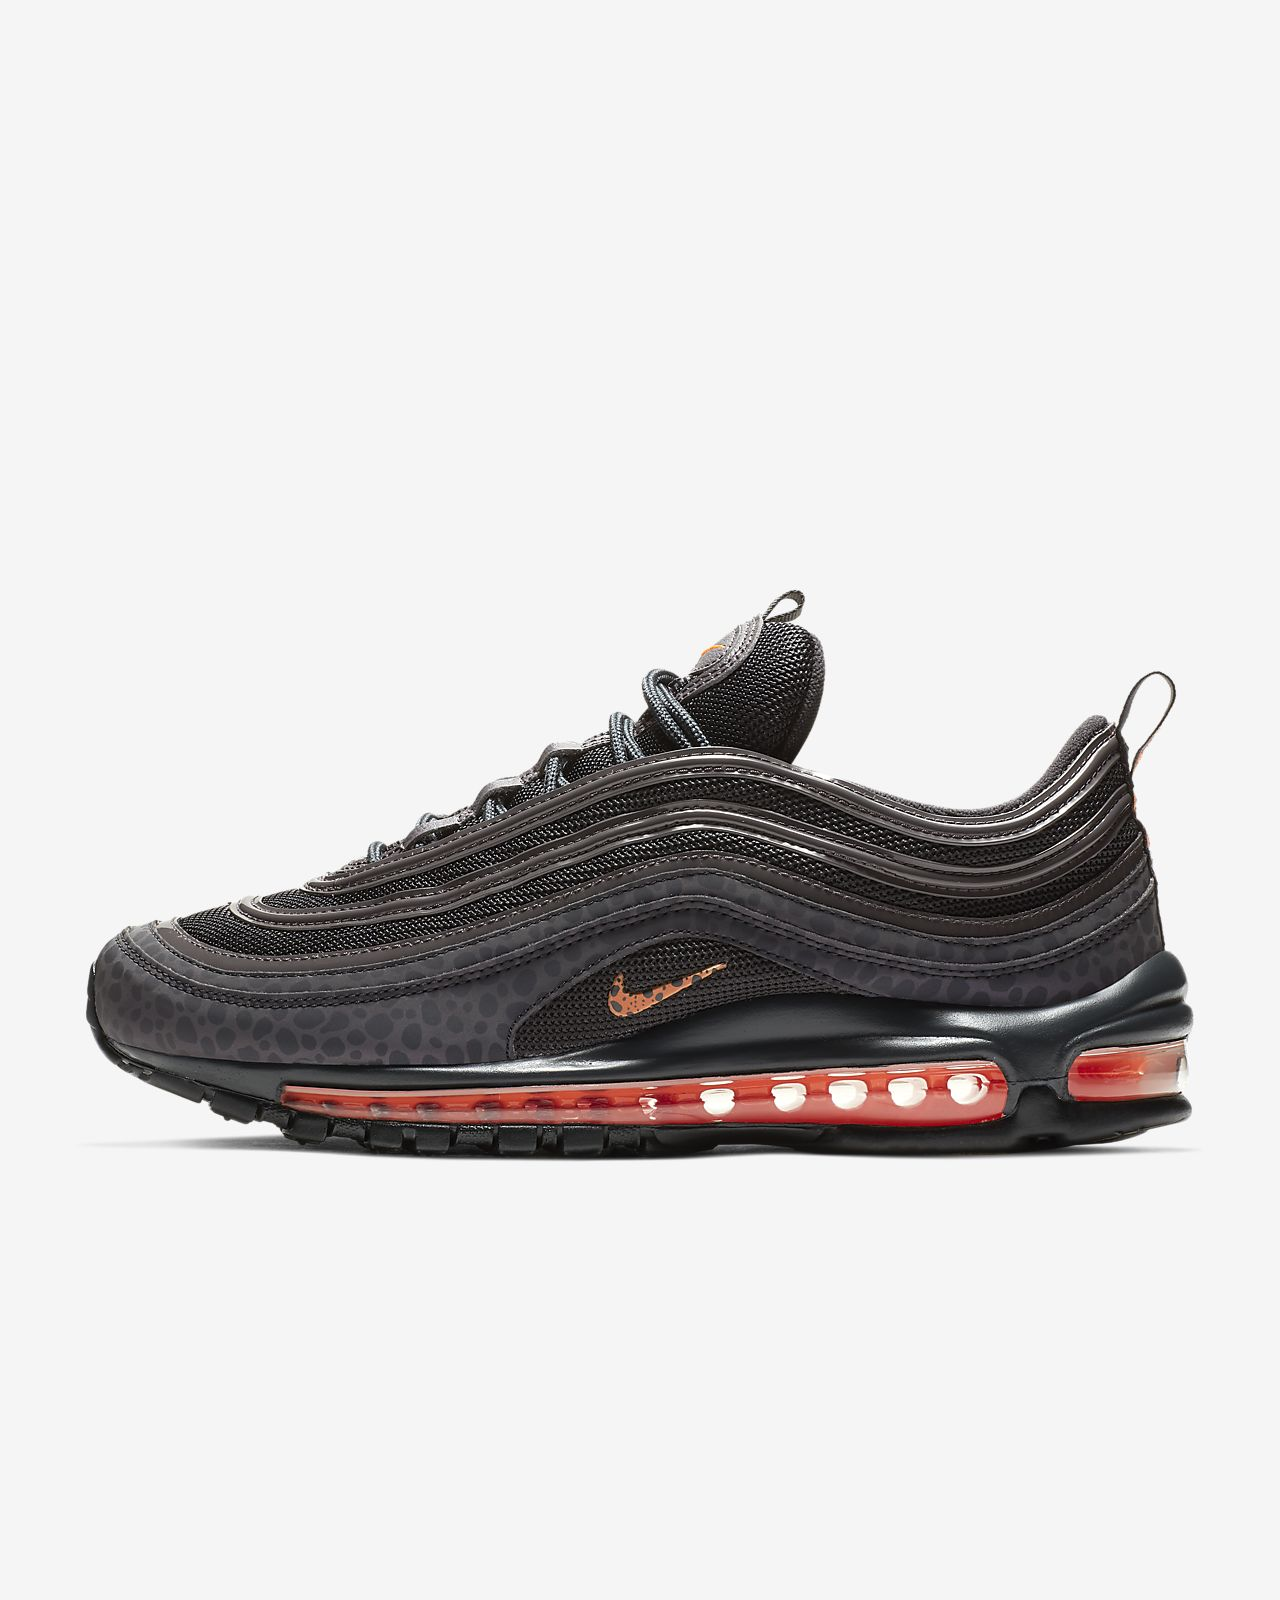 Nike Air Max 97 SE Reflective Men's Shoe